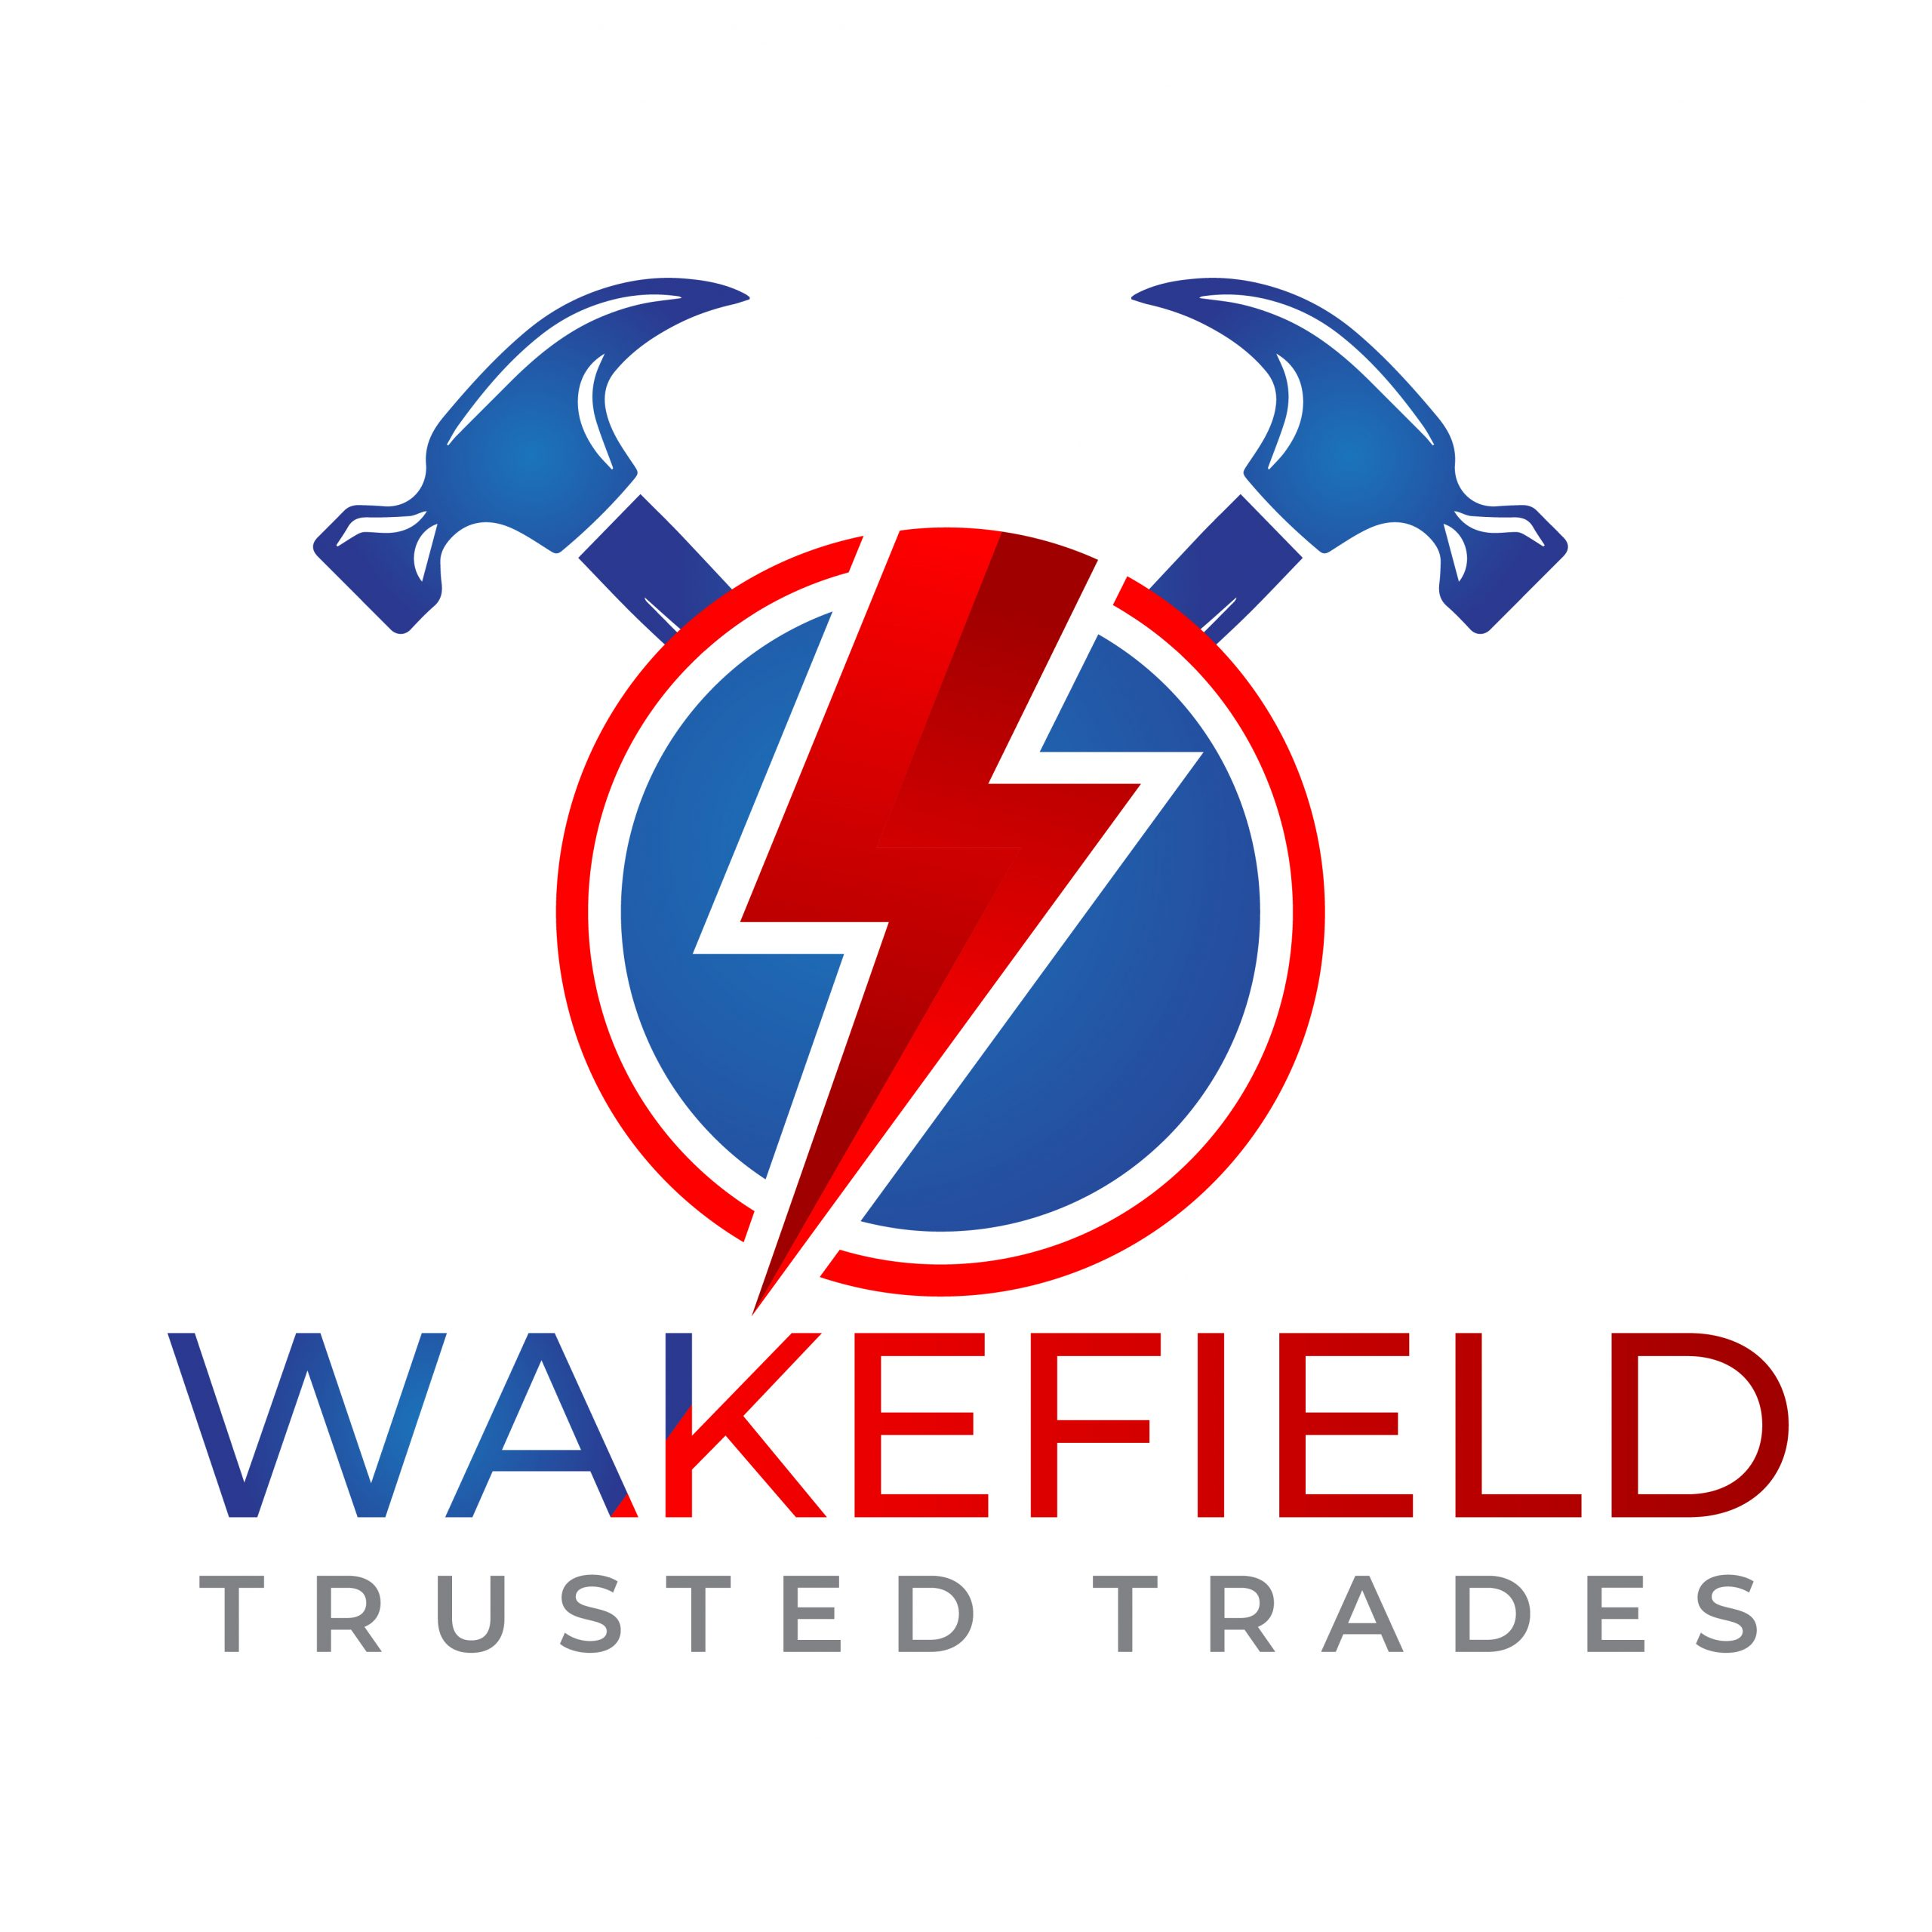 Wakefield Trusted Trades